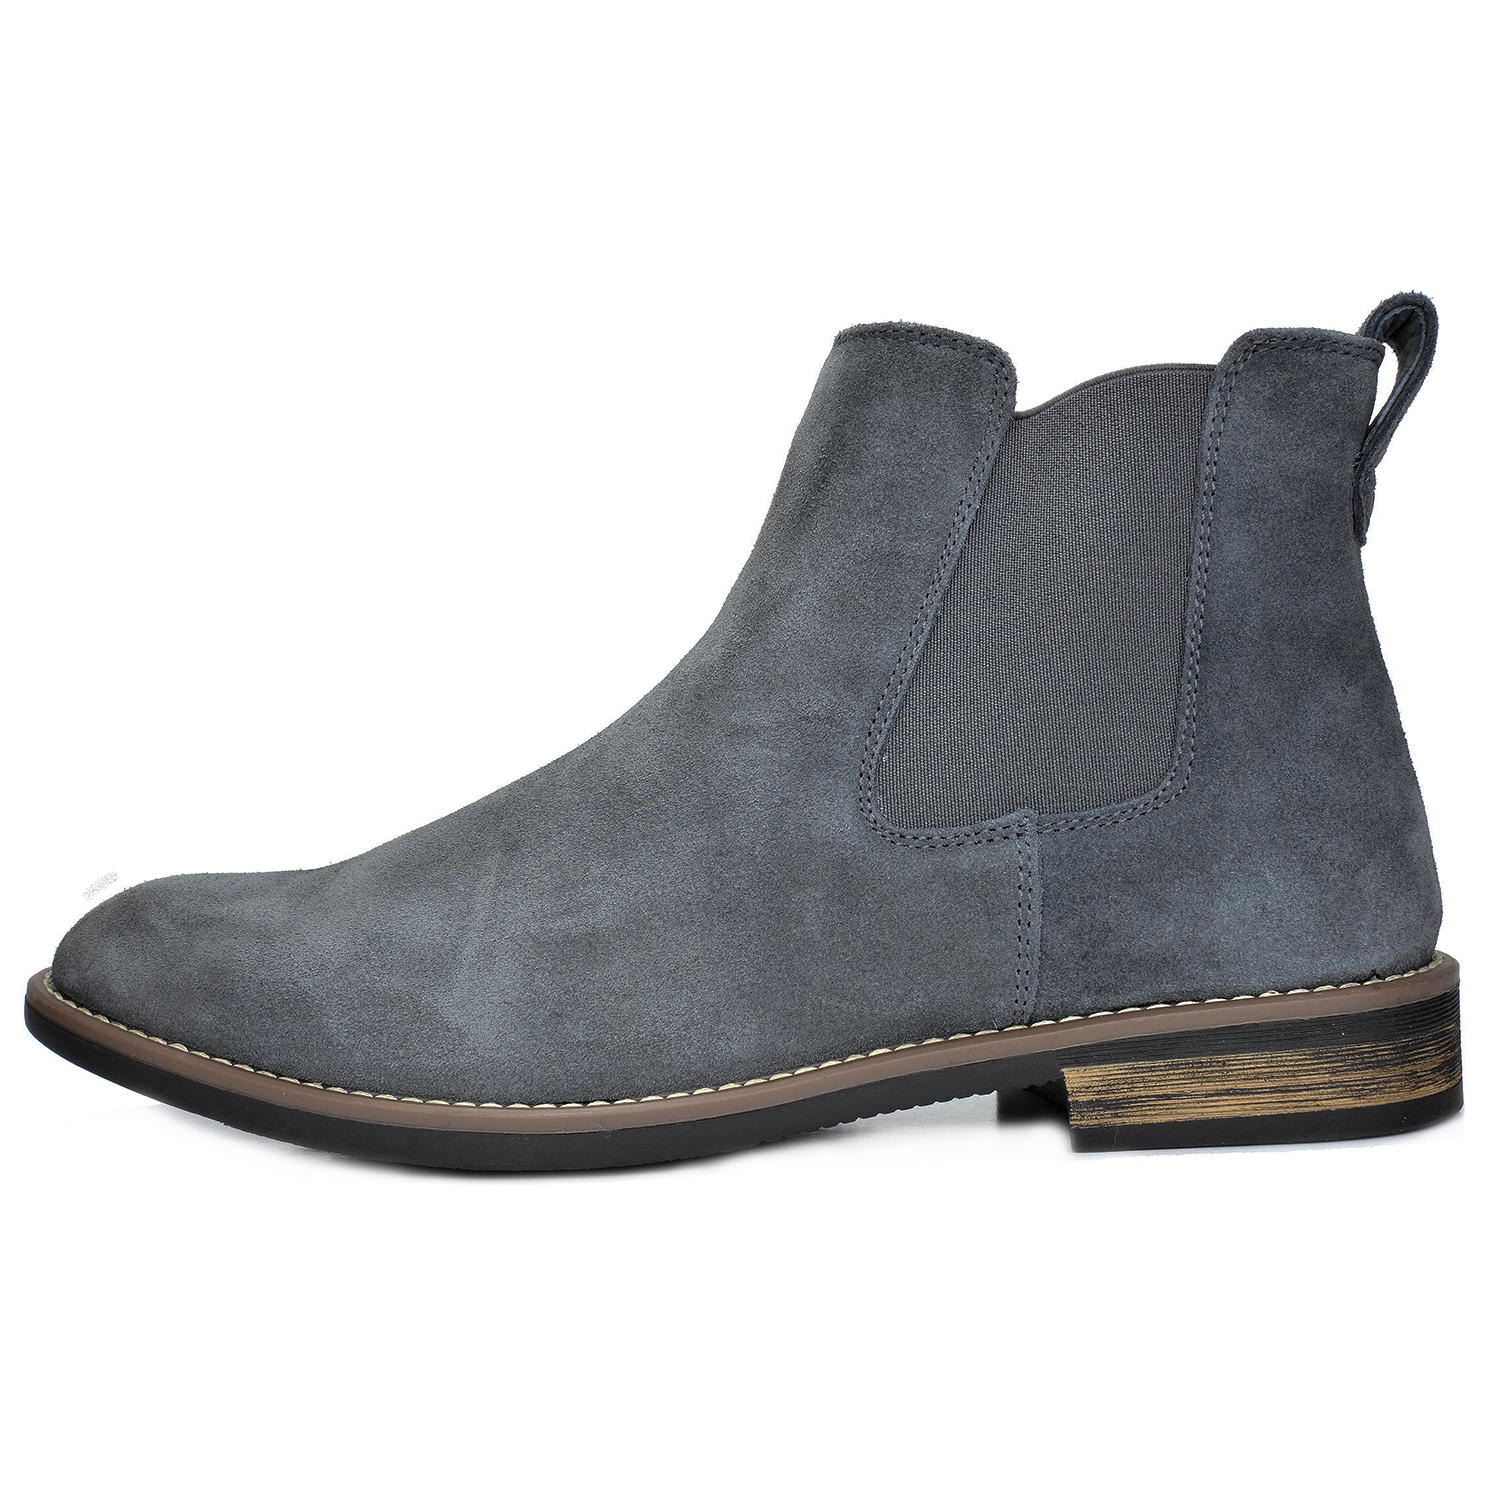 BRUNO-MARC-Men-URBAN-Suede-Leather-Chelsea-Chukka-Dress-Ankle-Boots-Casual-Shoes thumbnail 29